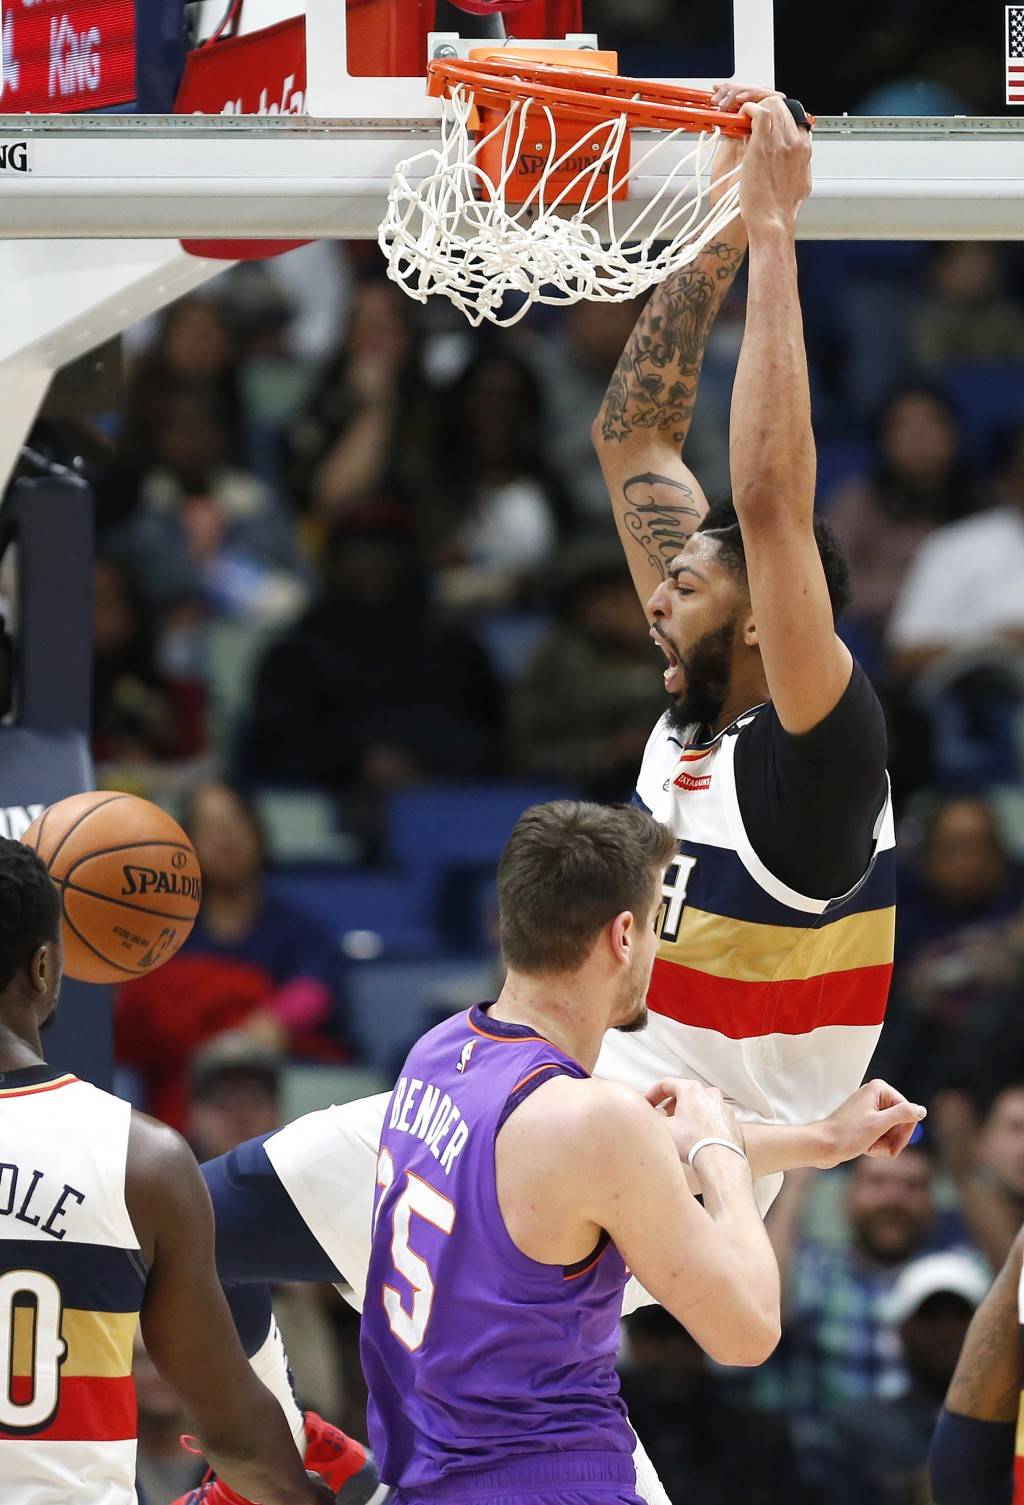 New Orleans Pelicans forward Anthony Davis (23) dunks the ball over Phoenix Suns forward Dragan Bender (35) during the first half of an NBA basketball